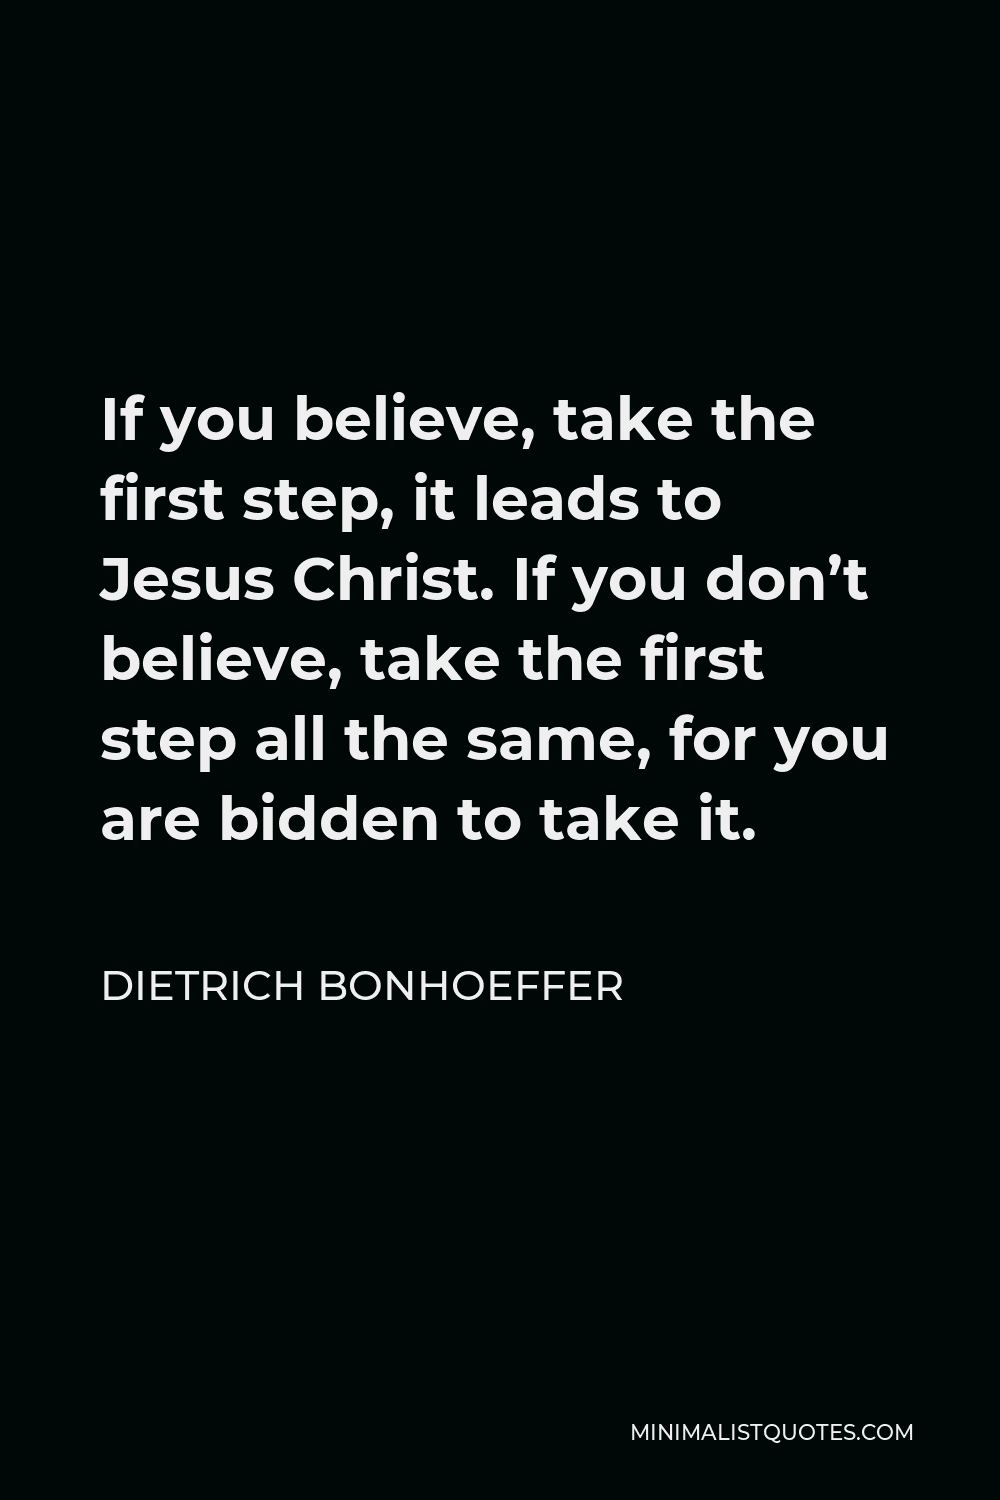 Dietrich Bonhoeffer Quote - If you believe, take the first step, it leads to Jesus Christ. If you don't believe, take the first step all the same, for you are bidden to take it.